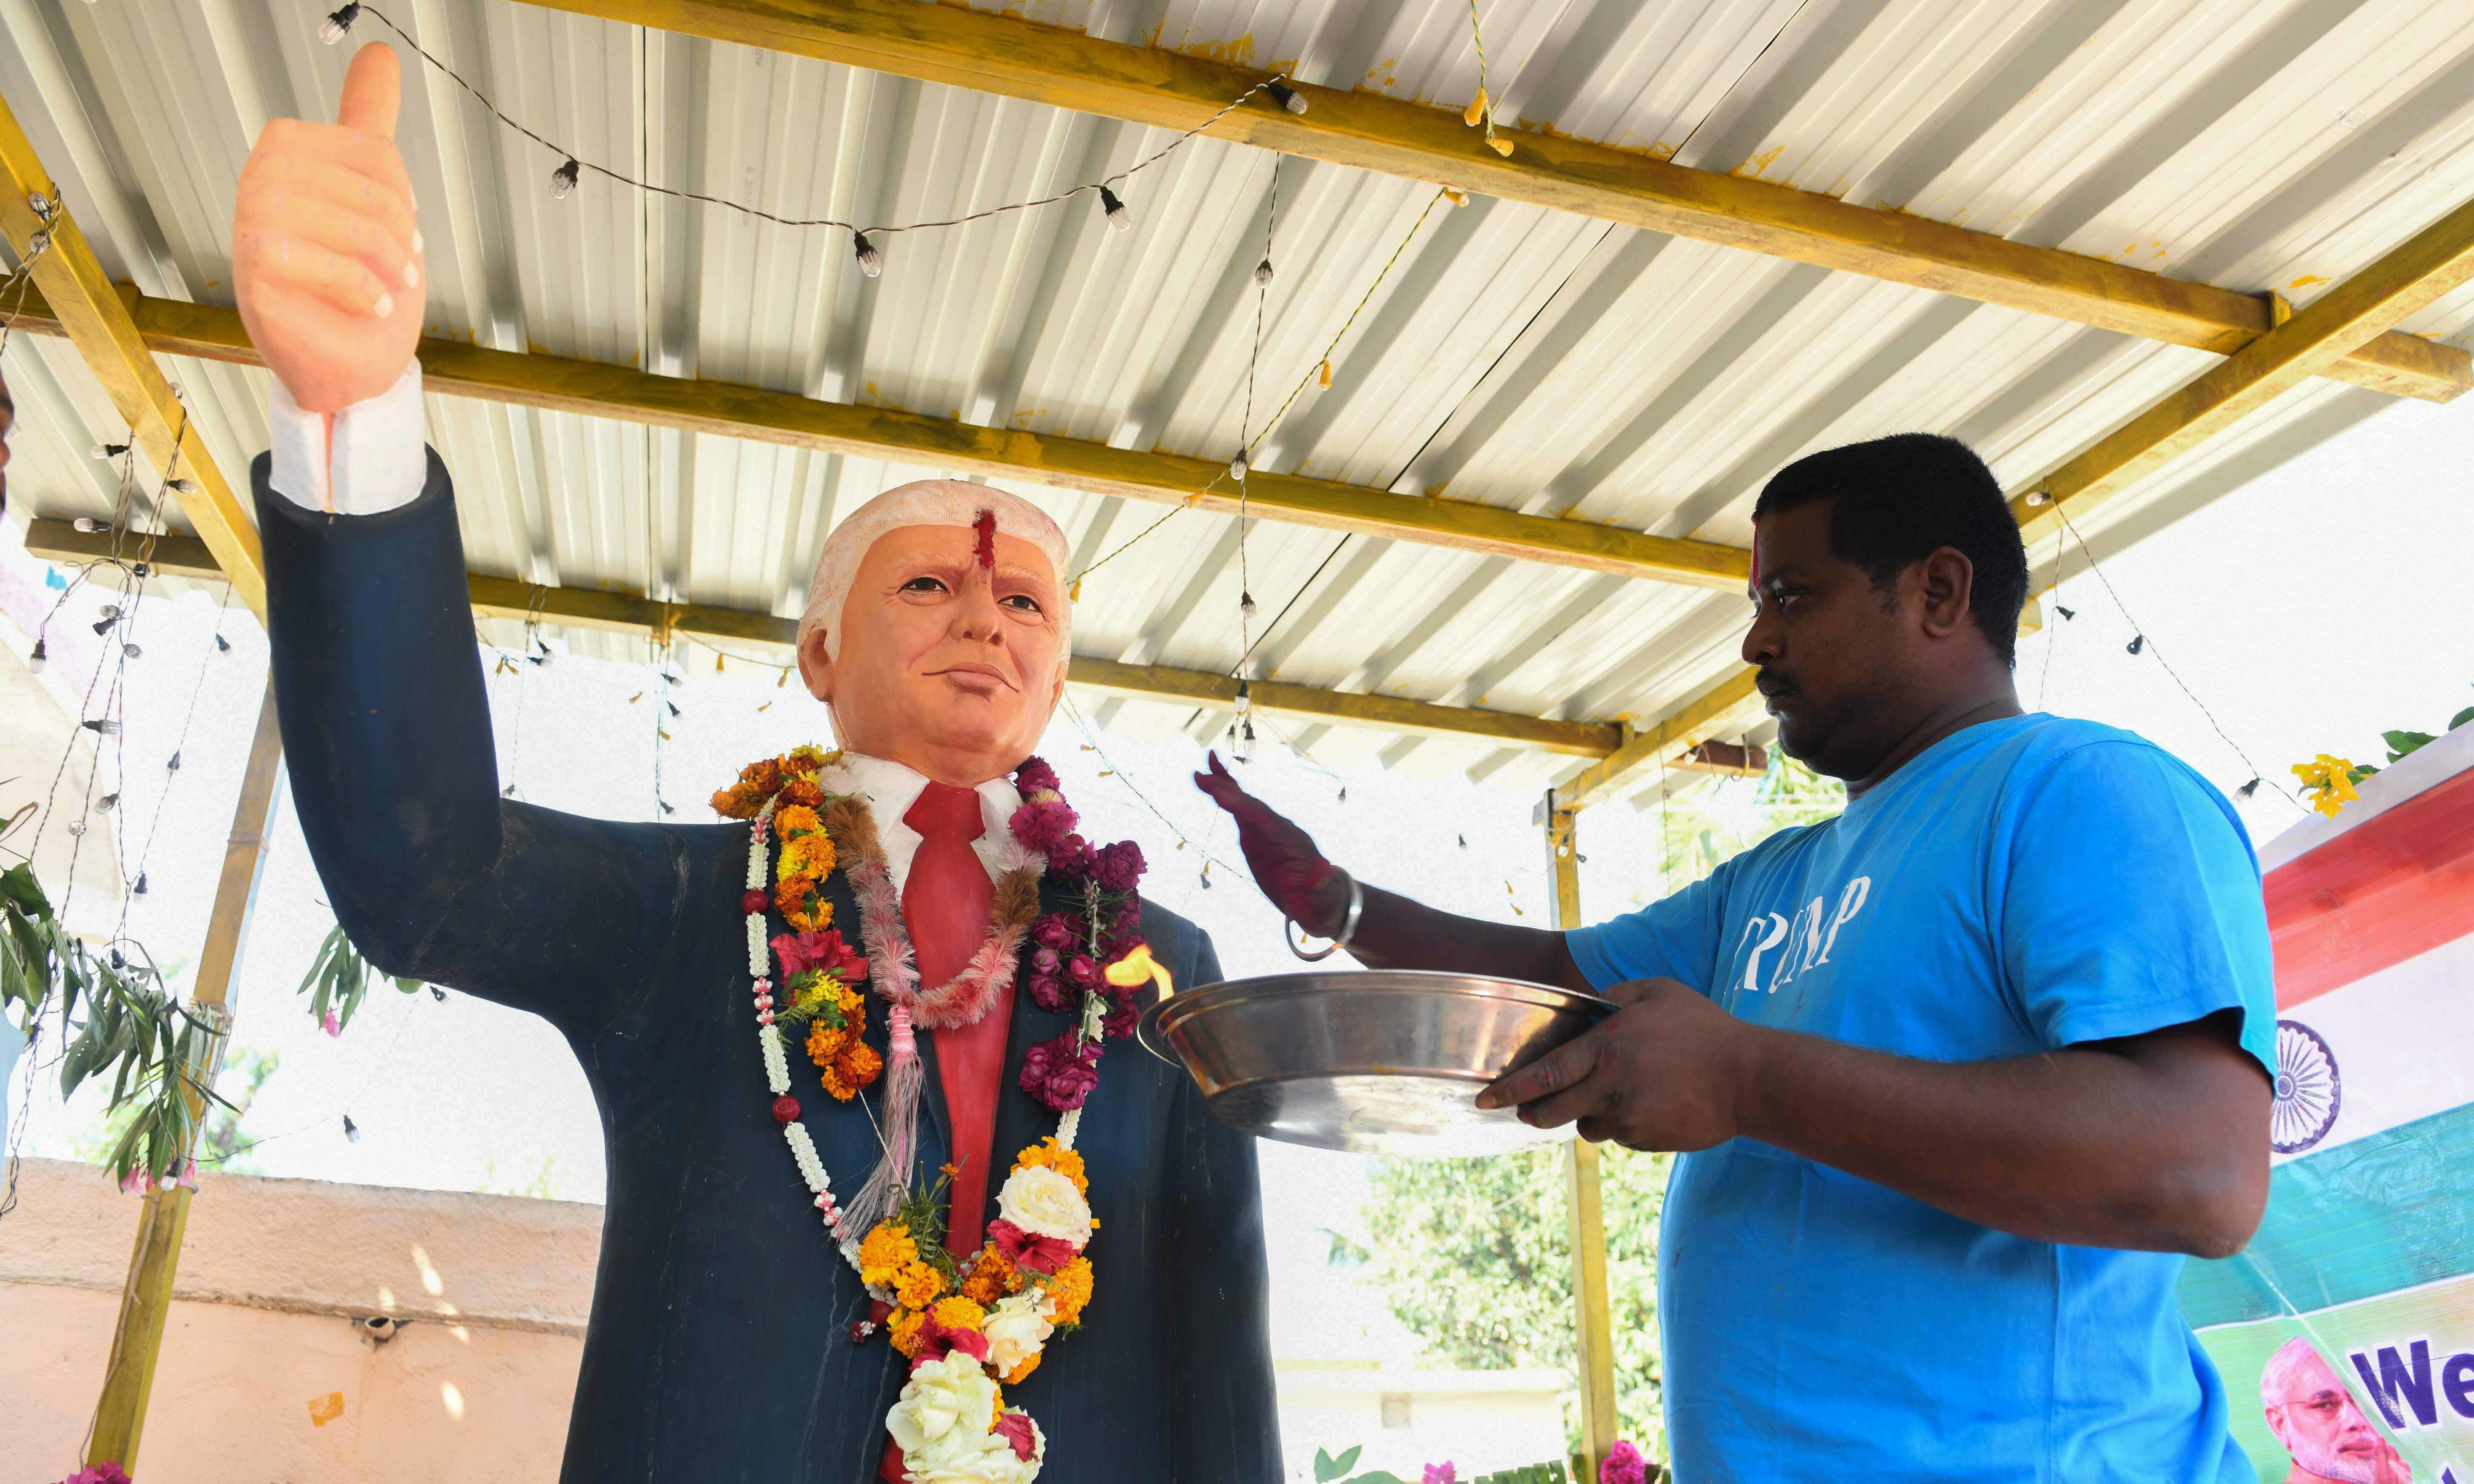 In this photo taken on February 17, farmer Bussa Krishna, 33, offers special prayers to the statue of US President Donald Trump, at his residence in Jangaon district in Telangana state, some 120 km from Hyderabad, ahead of the visit of US President Donald Trump to India. — AFP